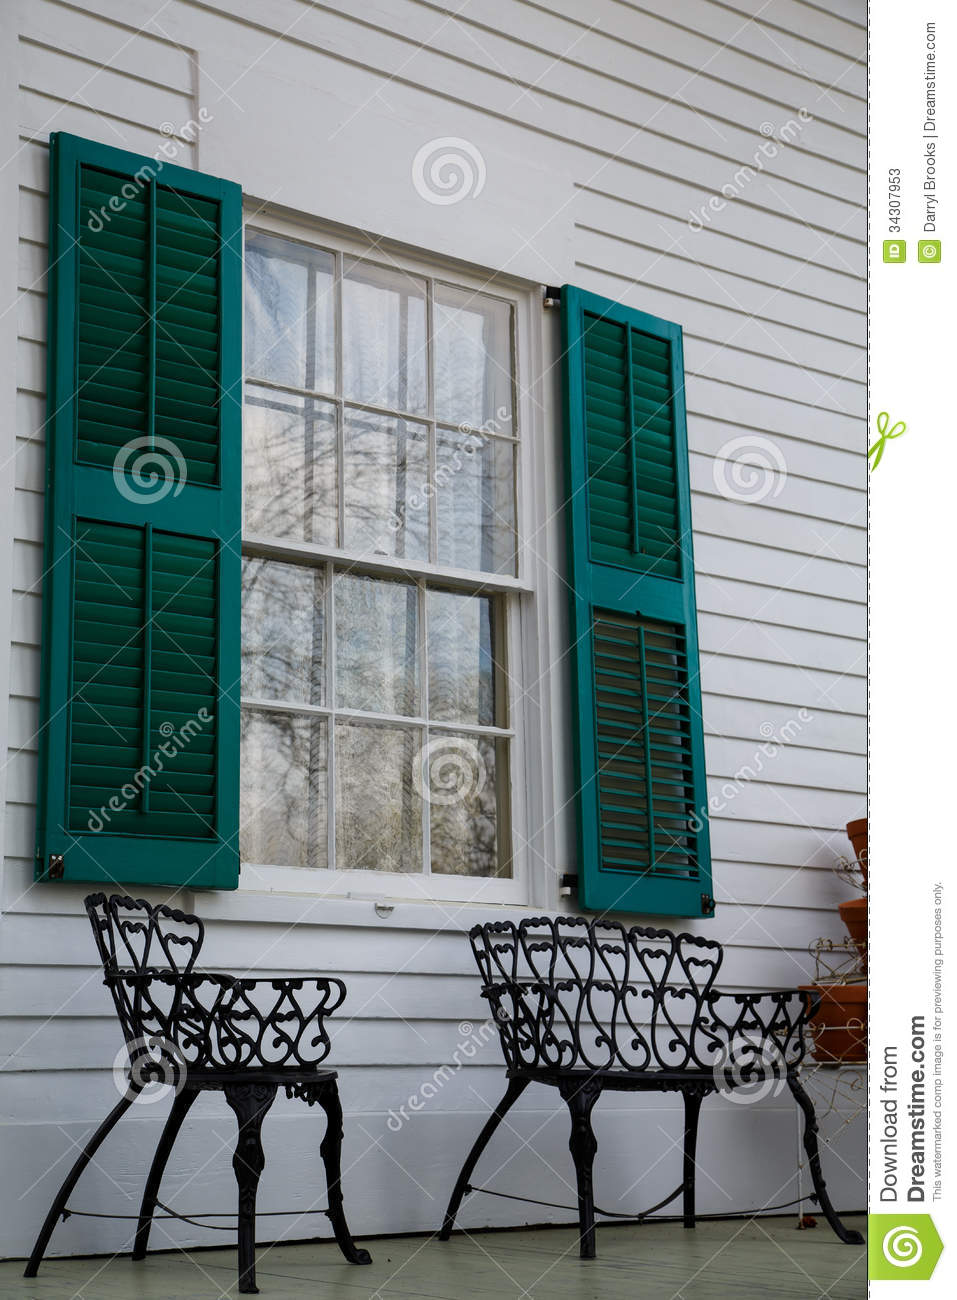 Wrought Iron Benches Under Green Shutters Stock Image